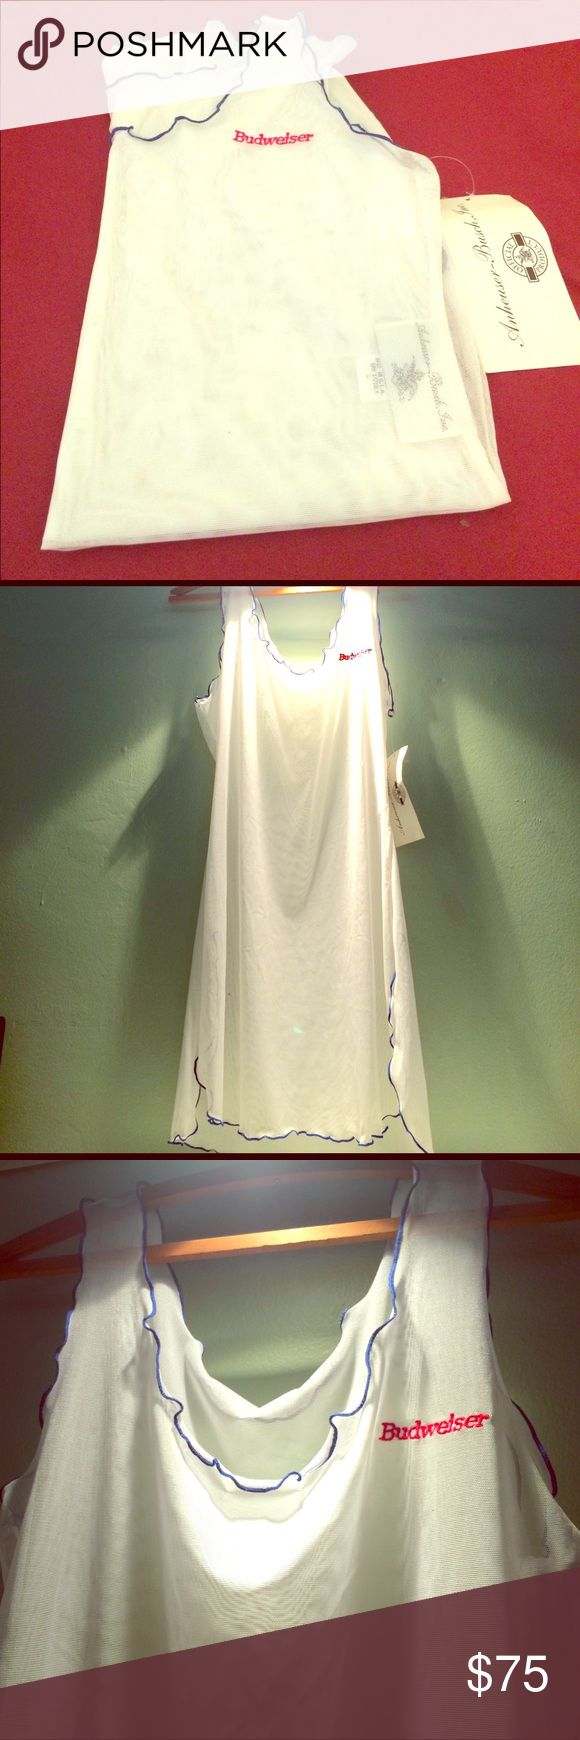 Budweiser Sheer Cover Up Beach Dress or lingerie Brand new with tags. Never used!  Women Sheer Mesh Body See-through beach cover up or lingerie. anheuser-busch INC Swim Coverups